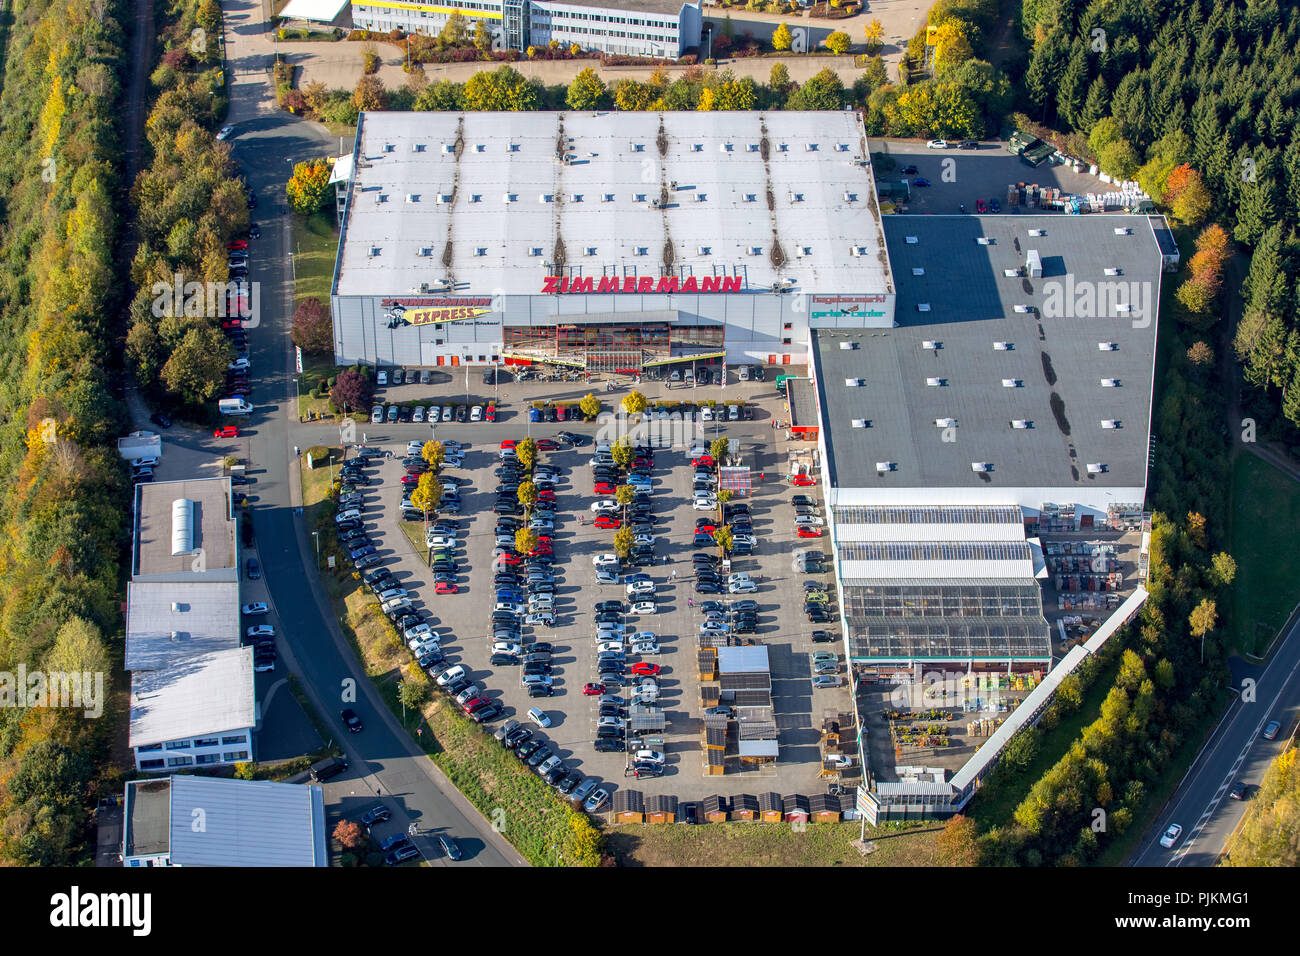 Aerial View Mobel Zimmermann Gmbh And Co Kg Hagebaumarkt